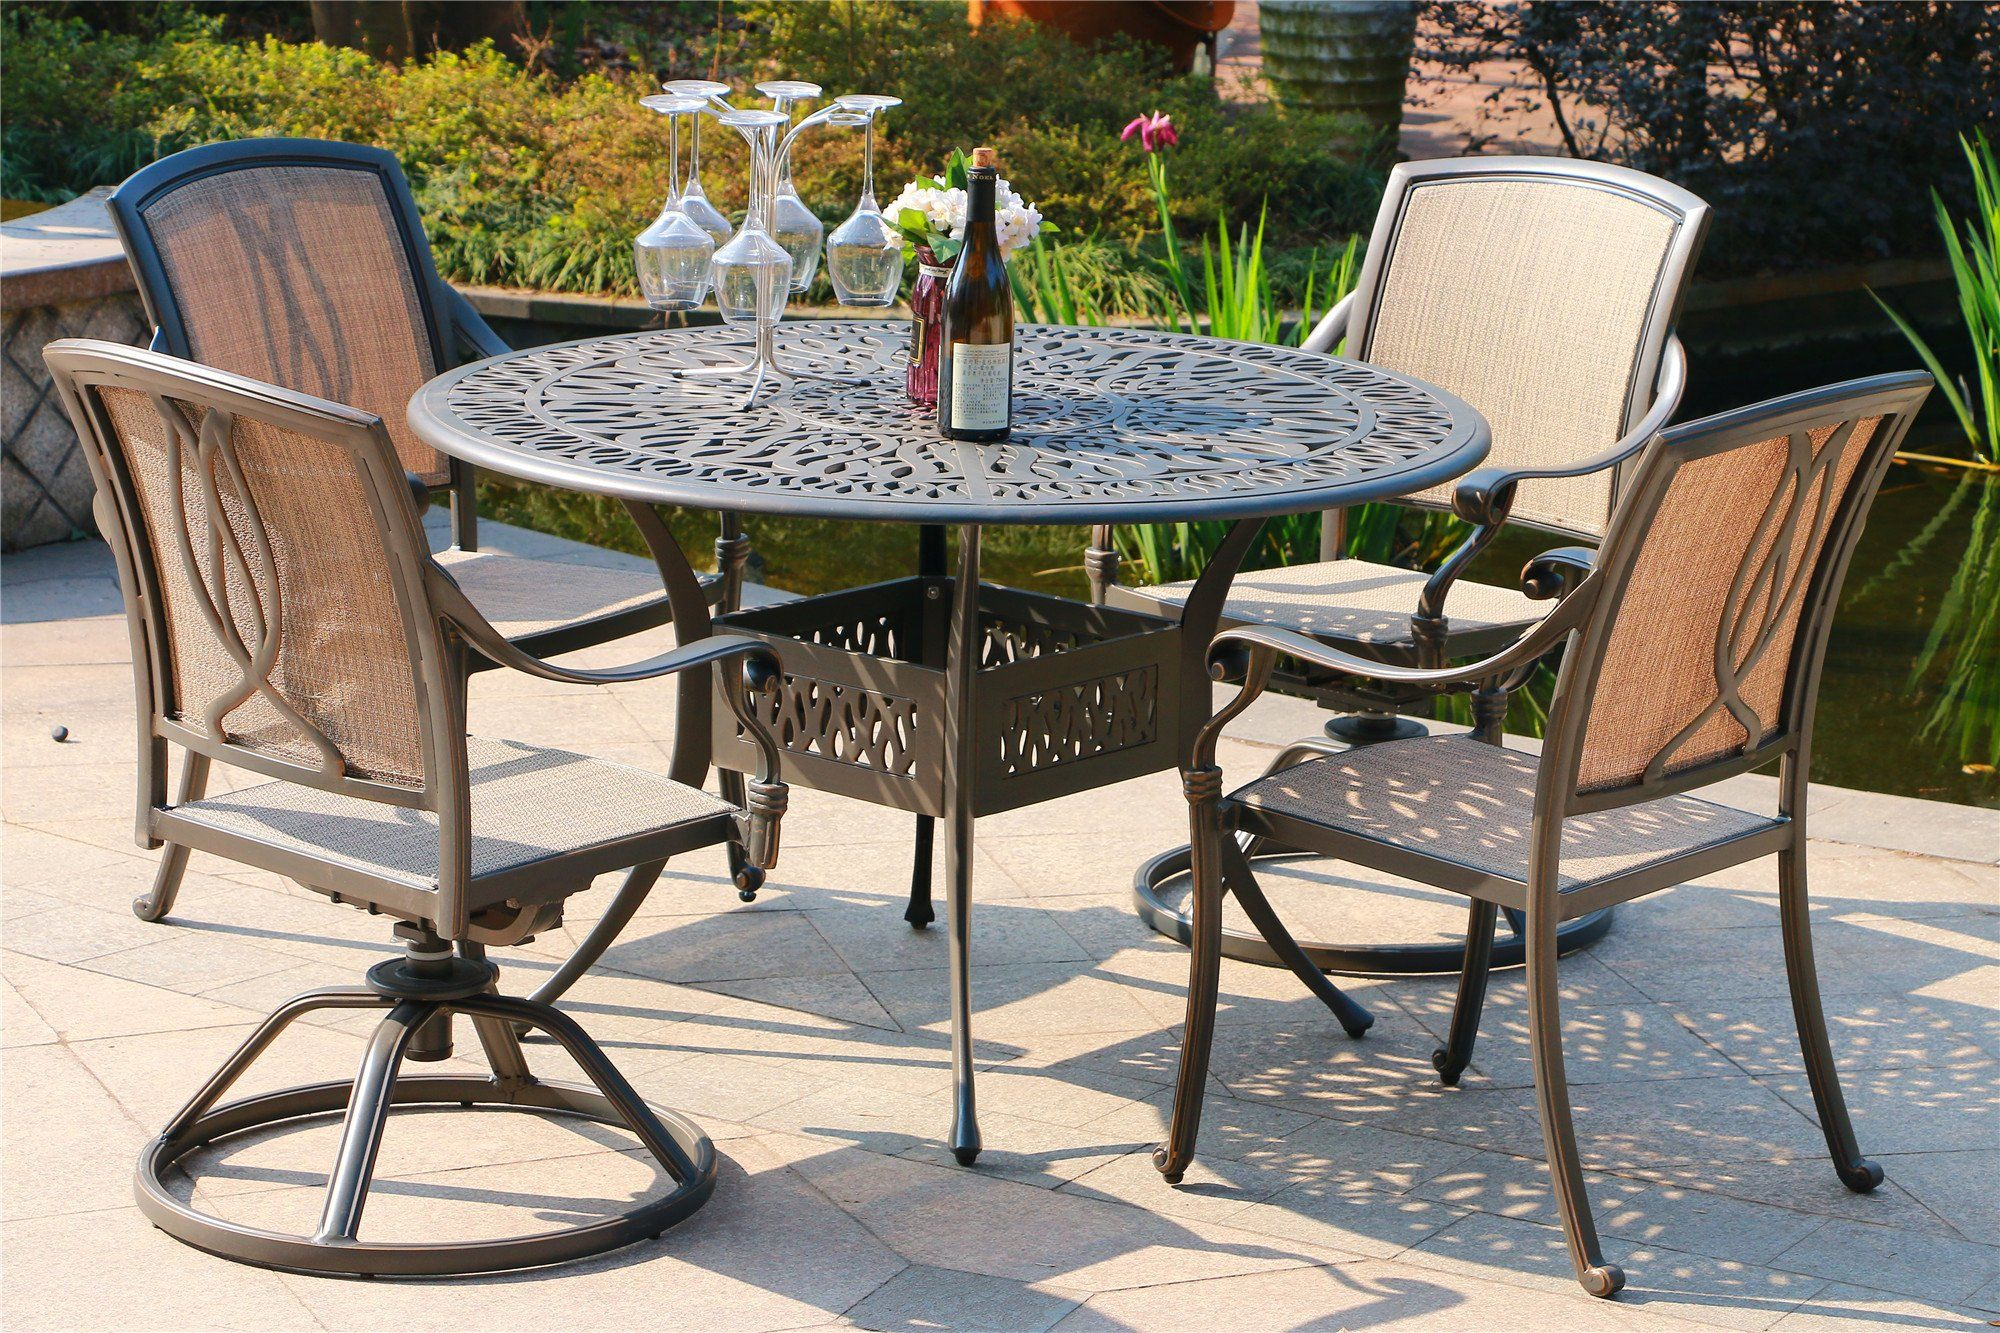 Amazing Patio Athens Dining Set 5 Piece Cushioned Dining Chairs And Alphanode Cool Chair Designs And Ideas Alphanodeonline